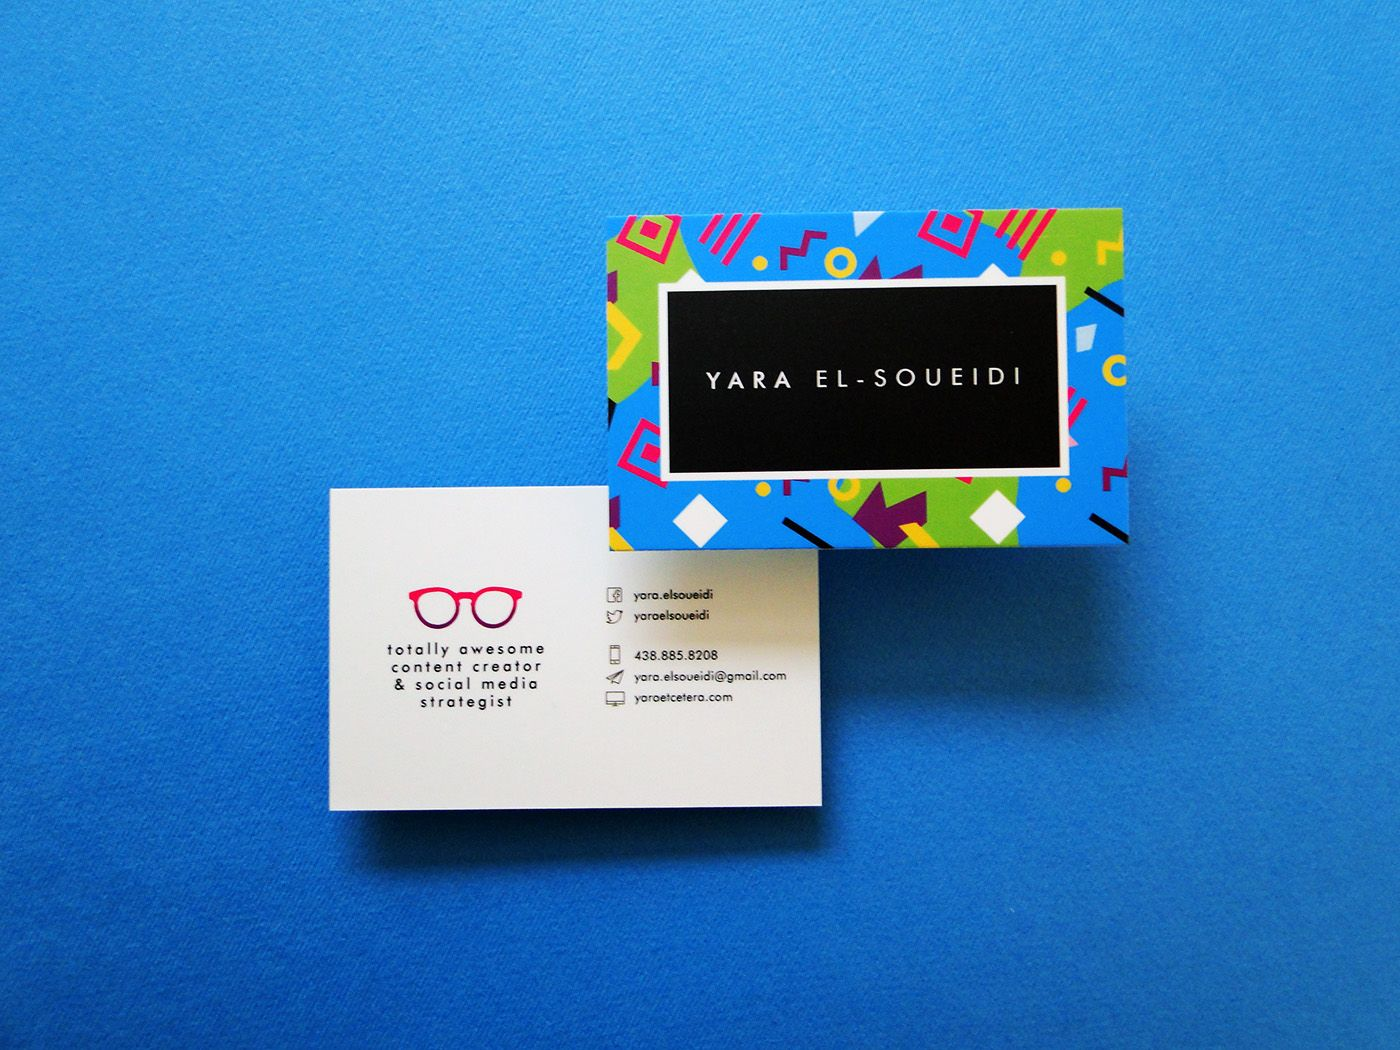 Social media strategist and totally awesome content creator, Yara El ...